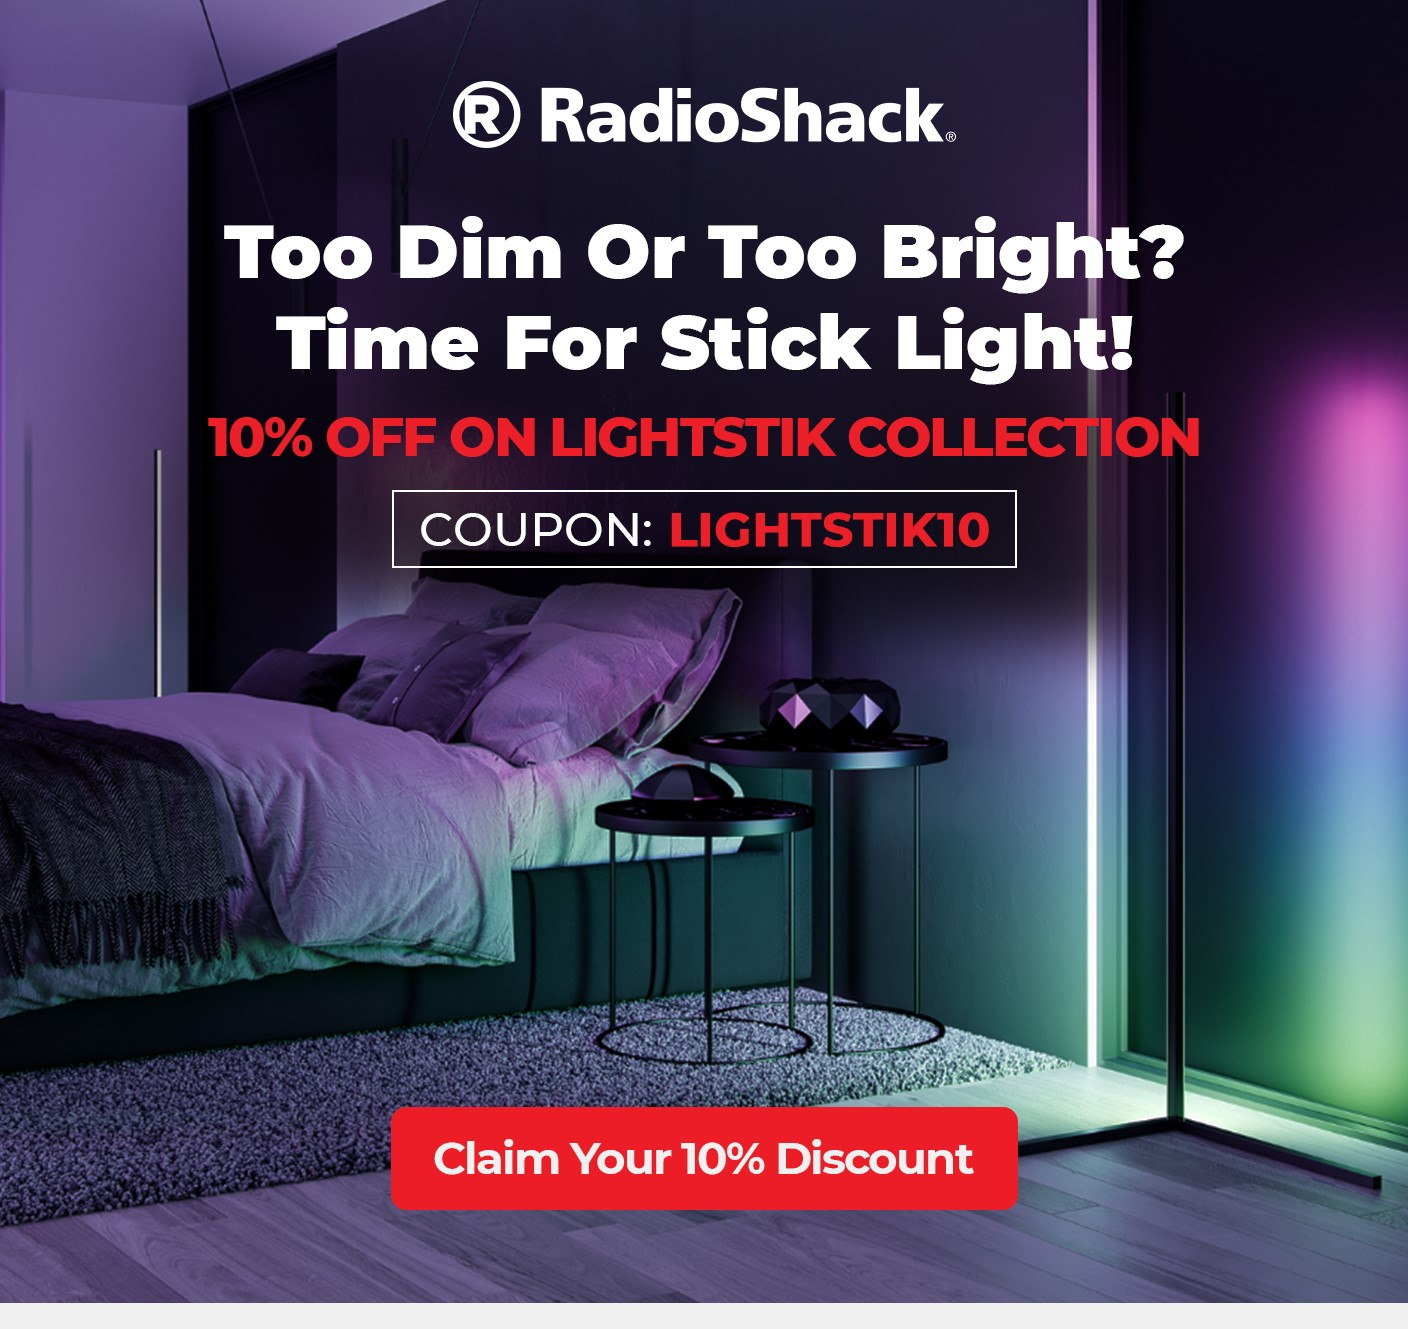 10% OFF ON LIGHTSTIK Collection